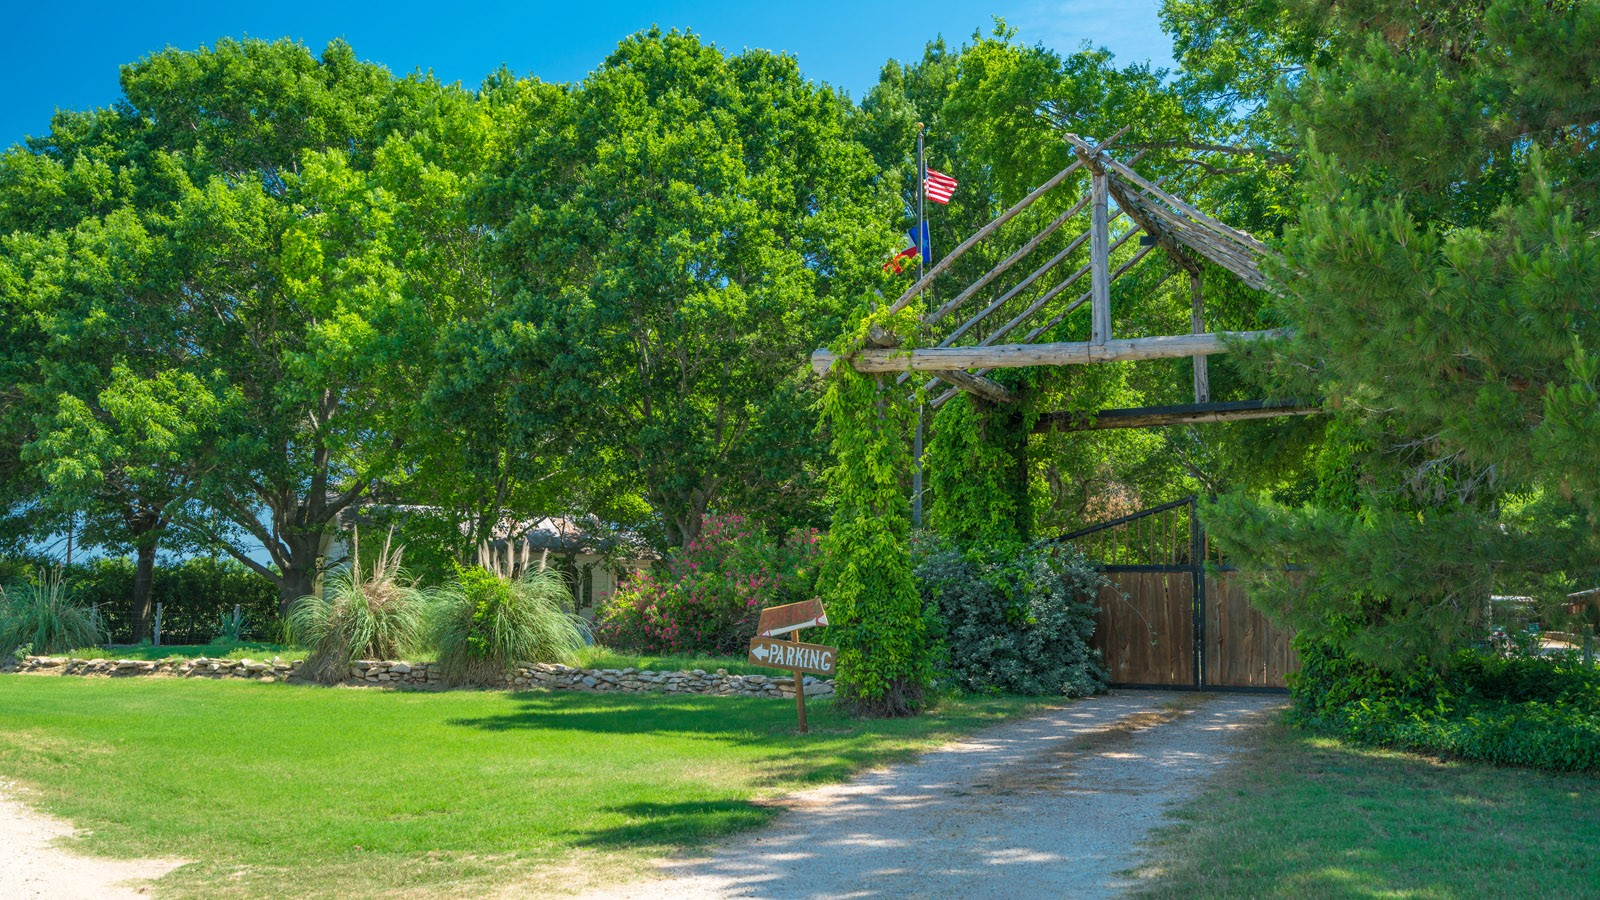 main ranch gate with green trees and buildings